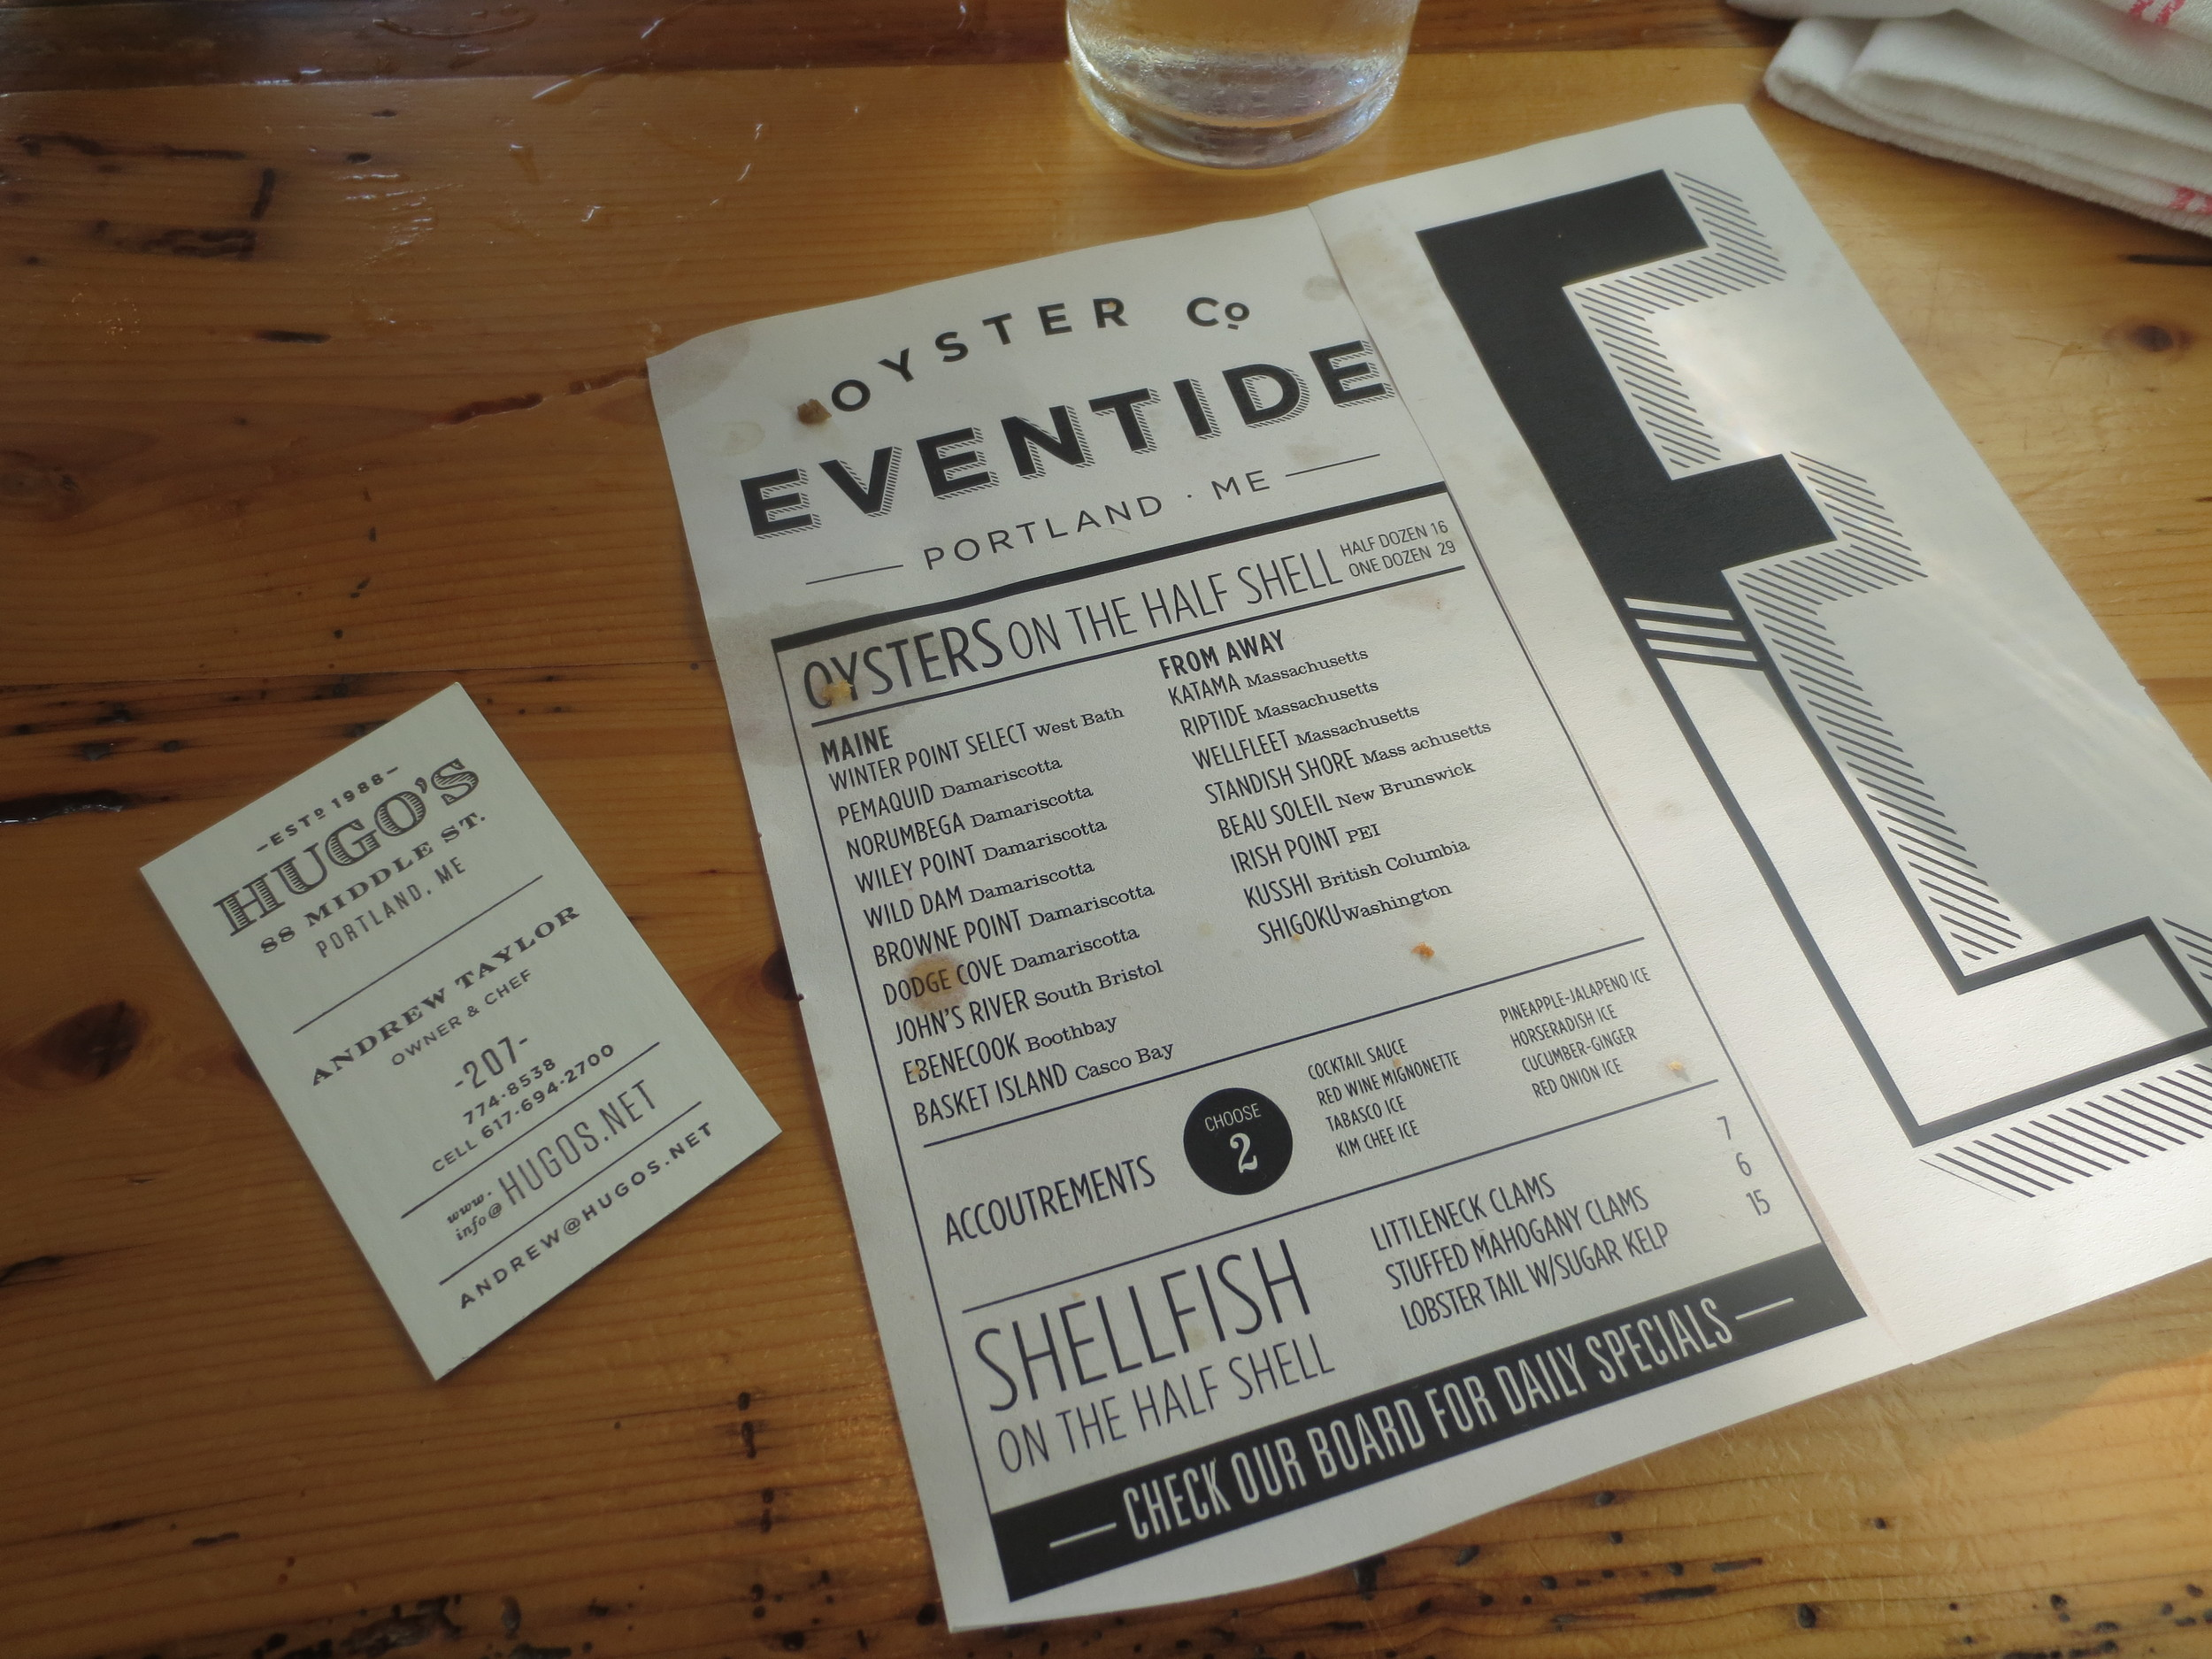 You must go to the Eventide!